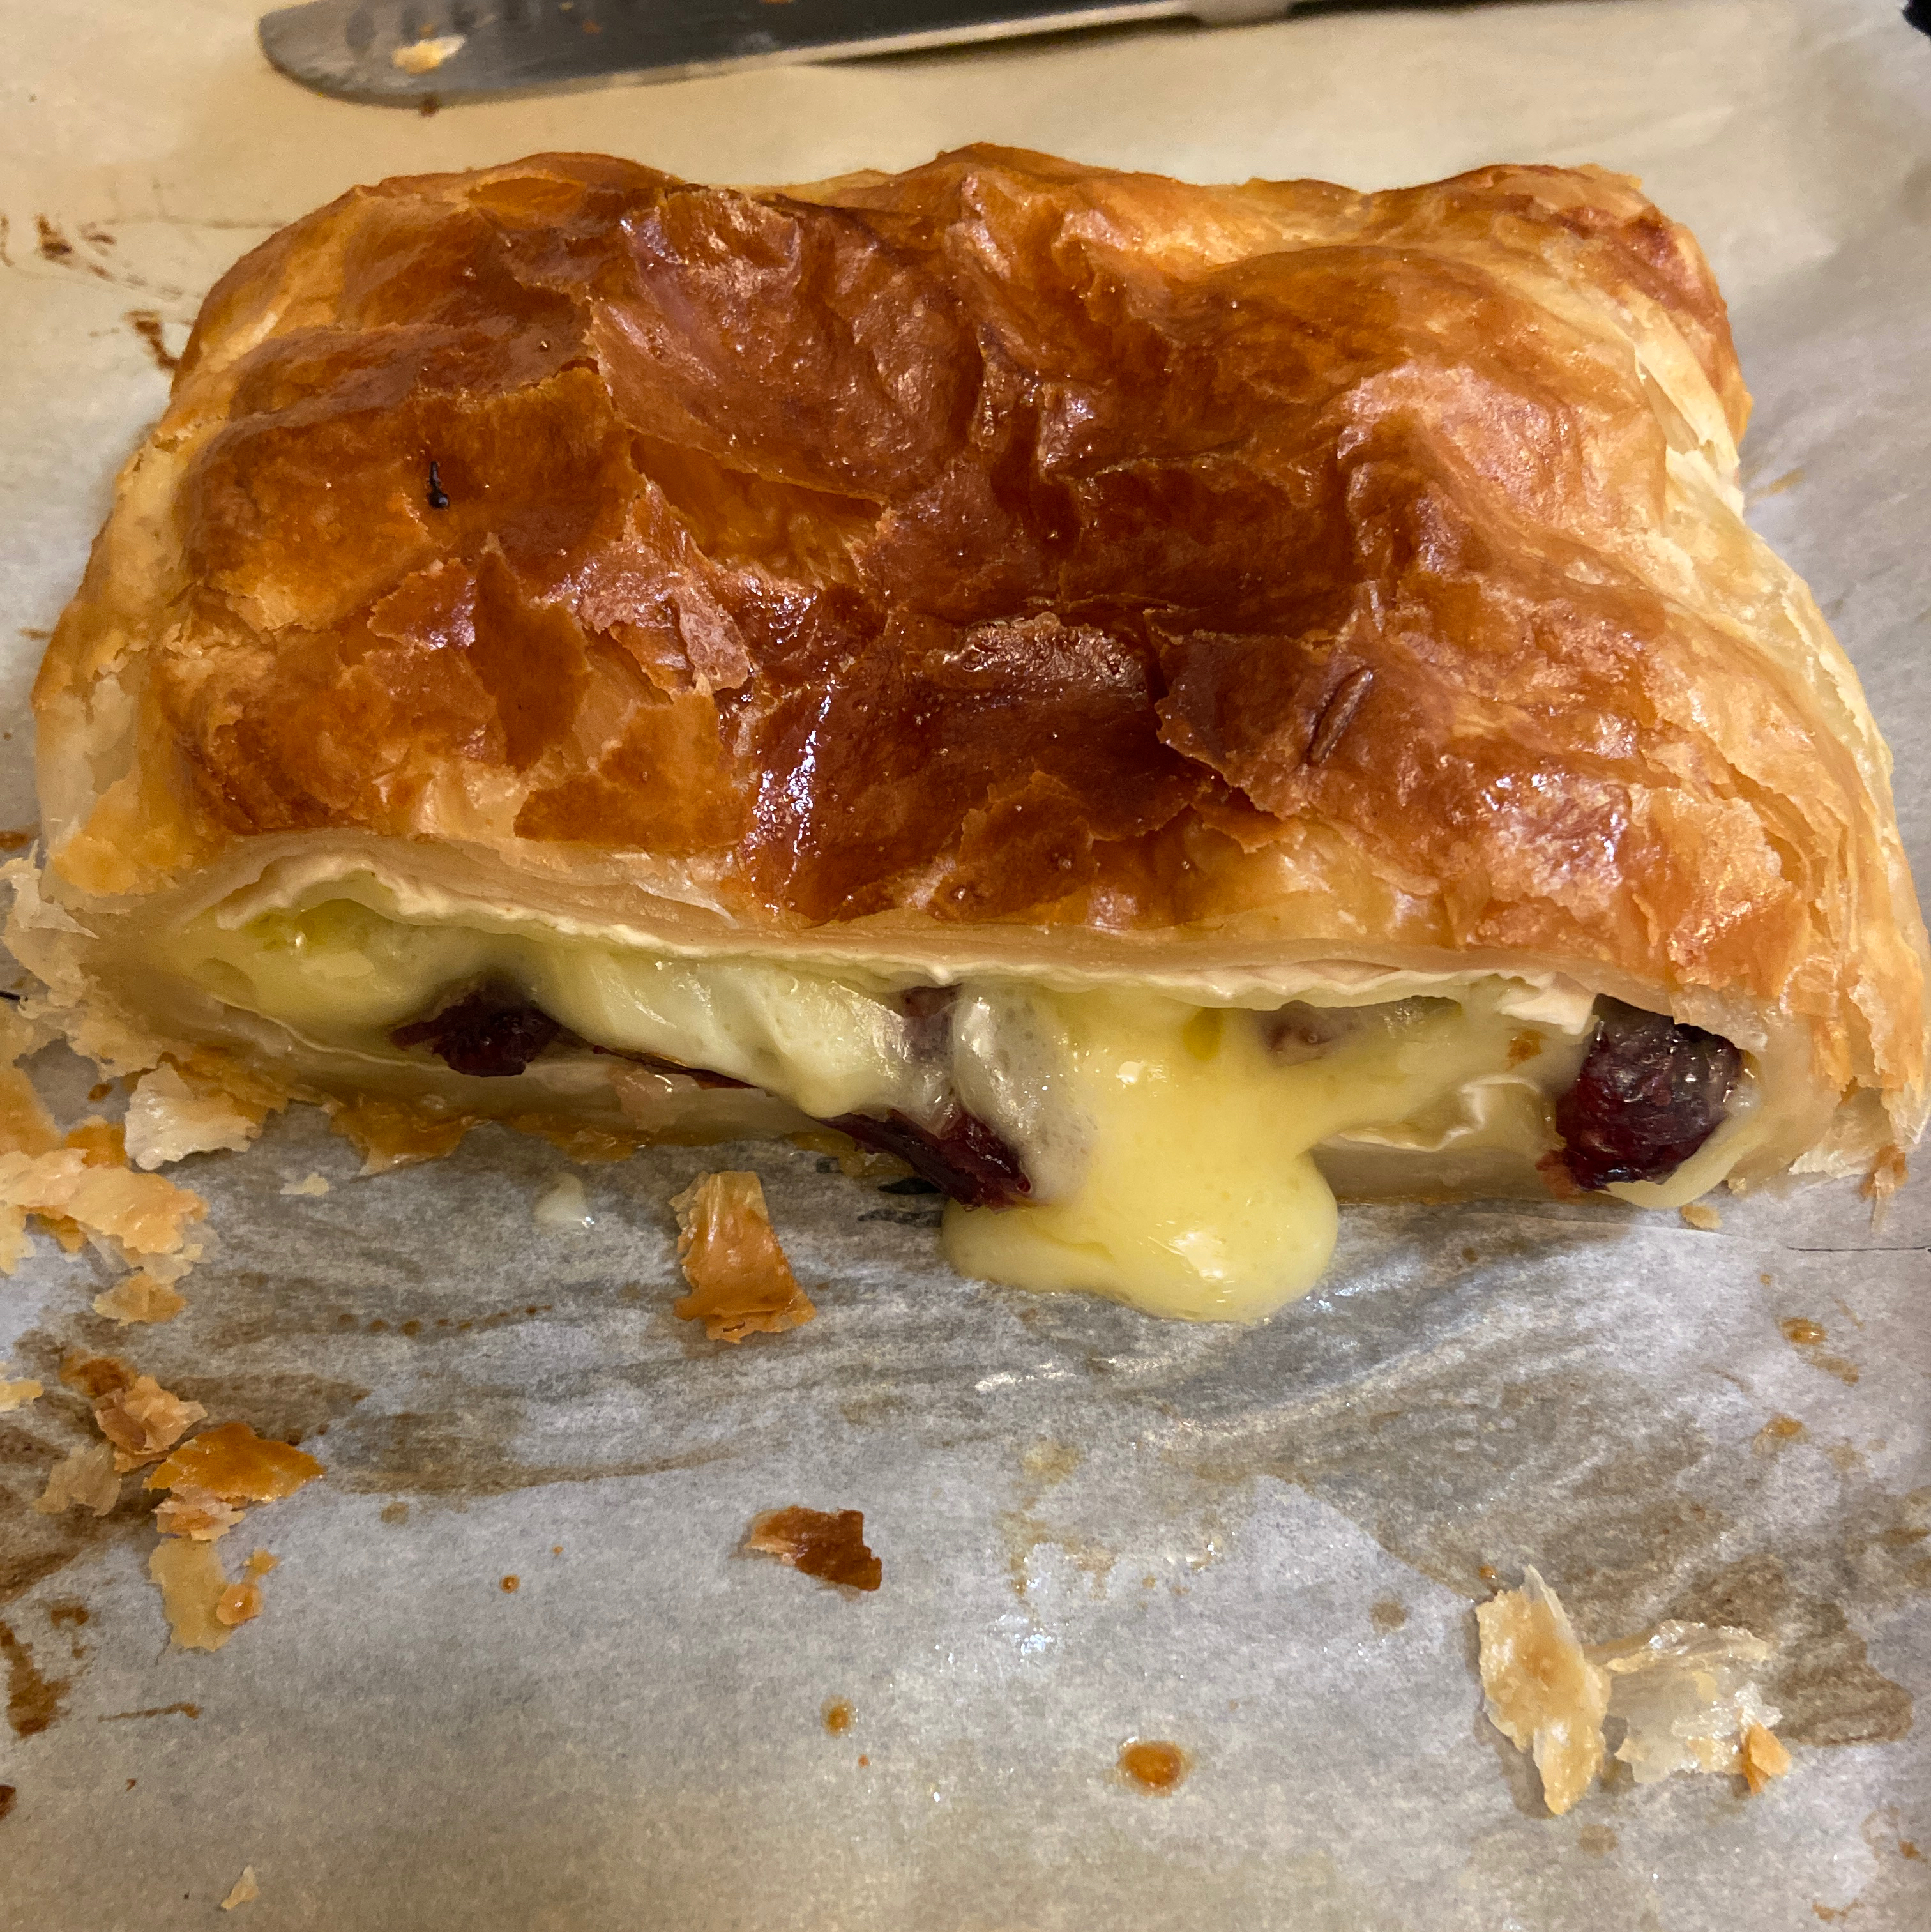 Baked Stuffed Brie with Cranberries & Walnuts